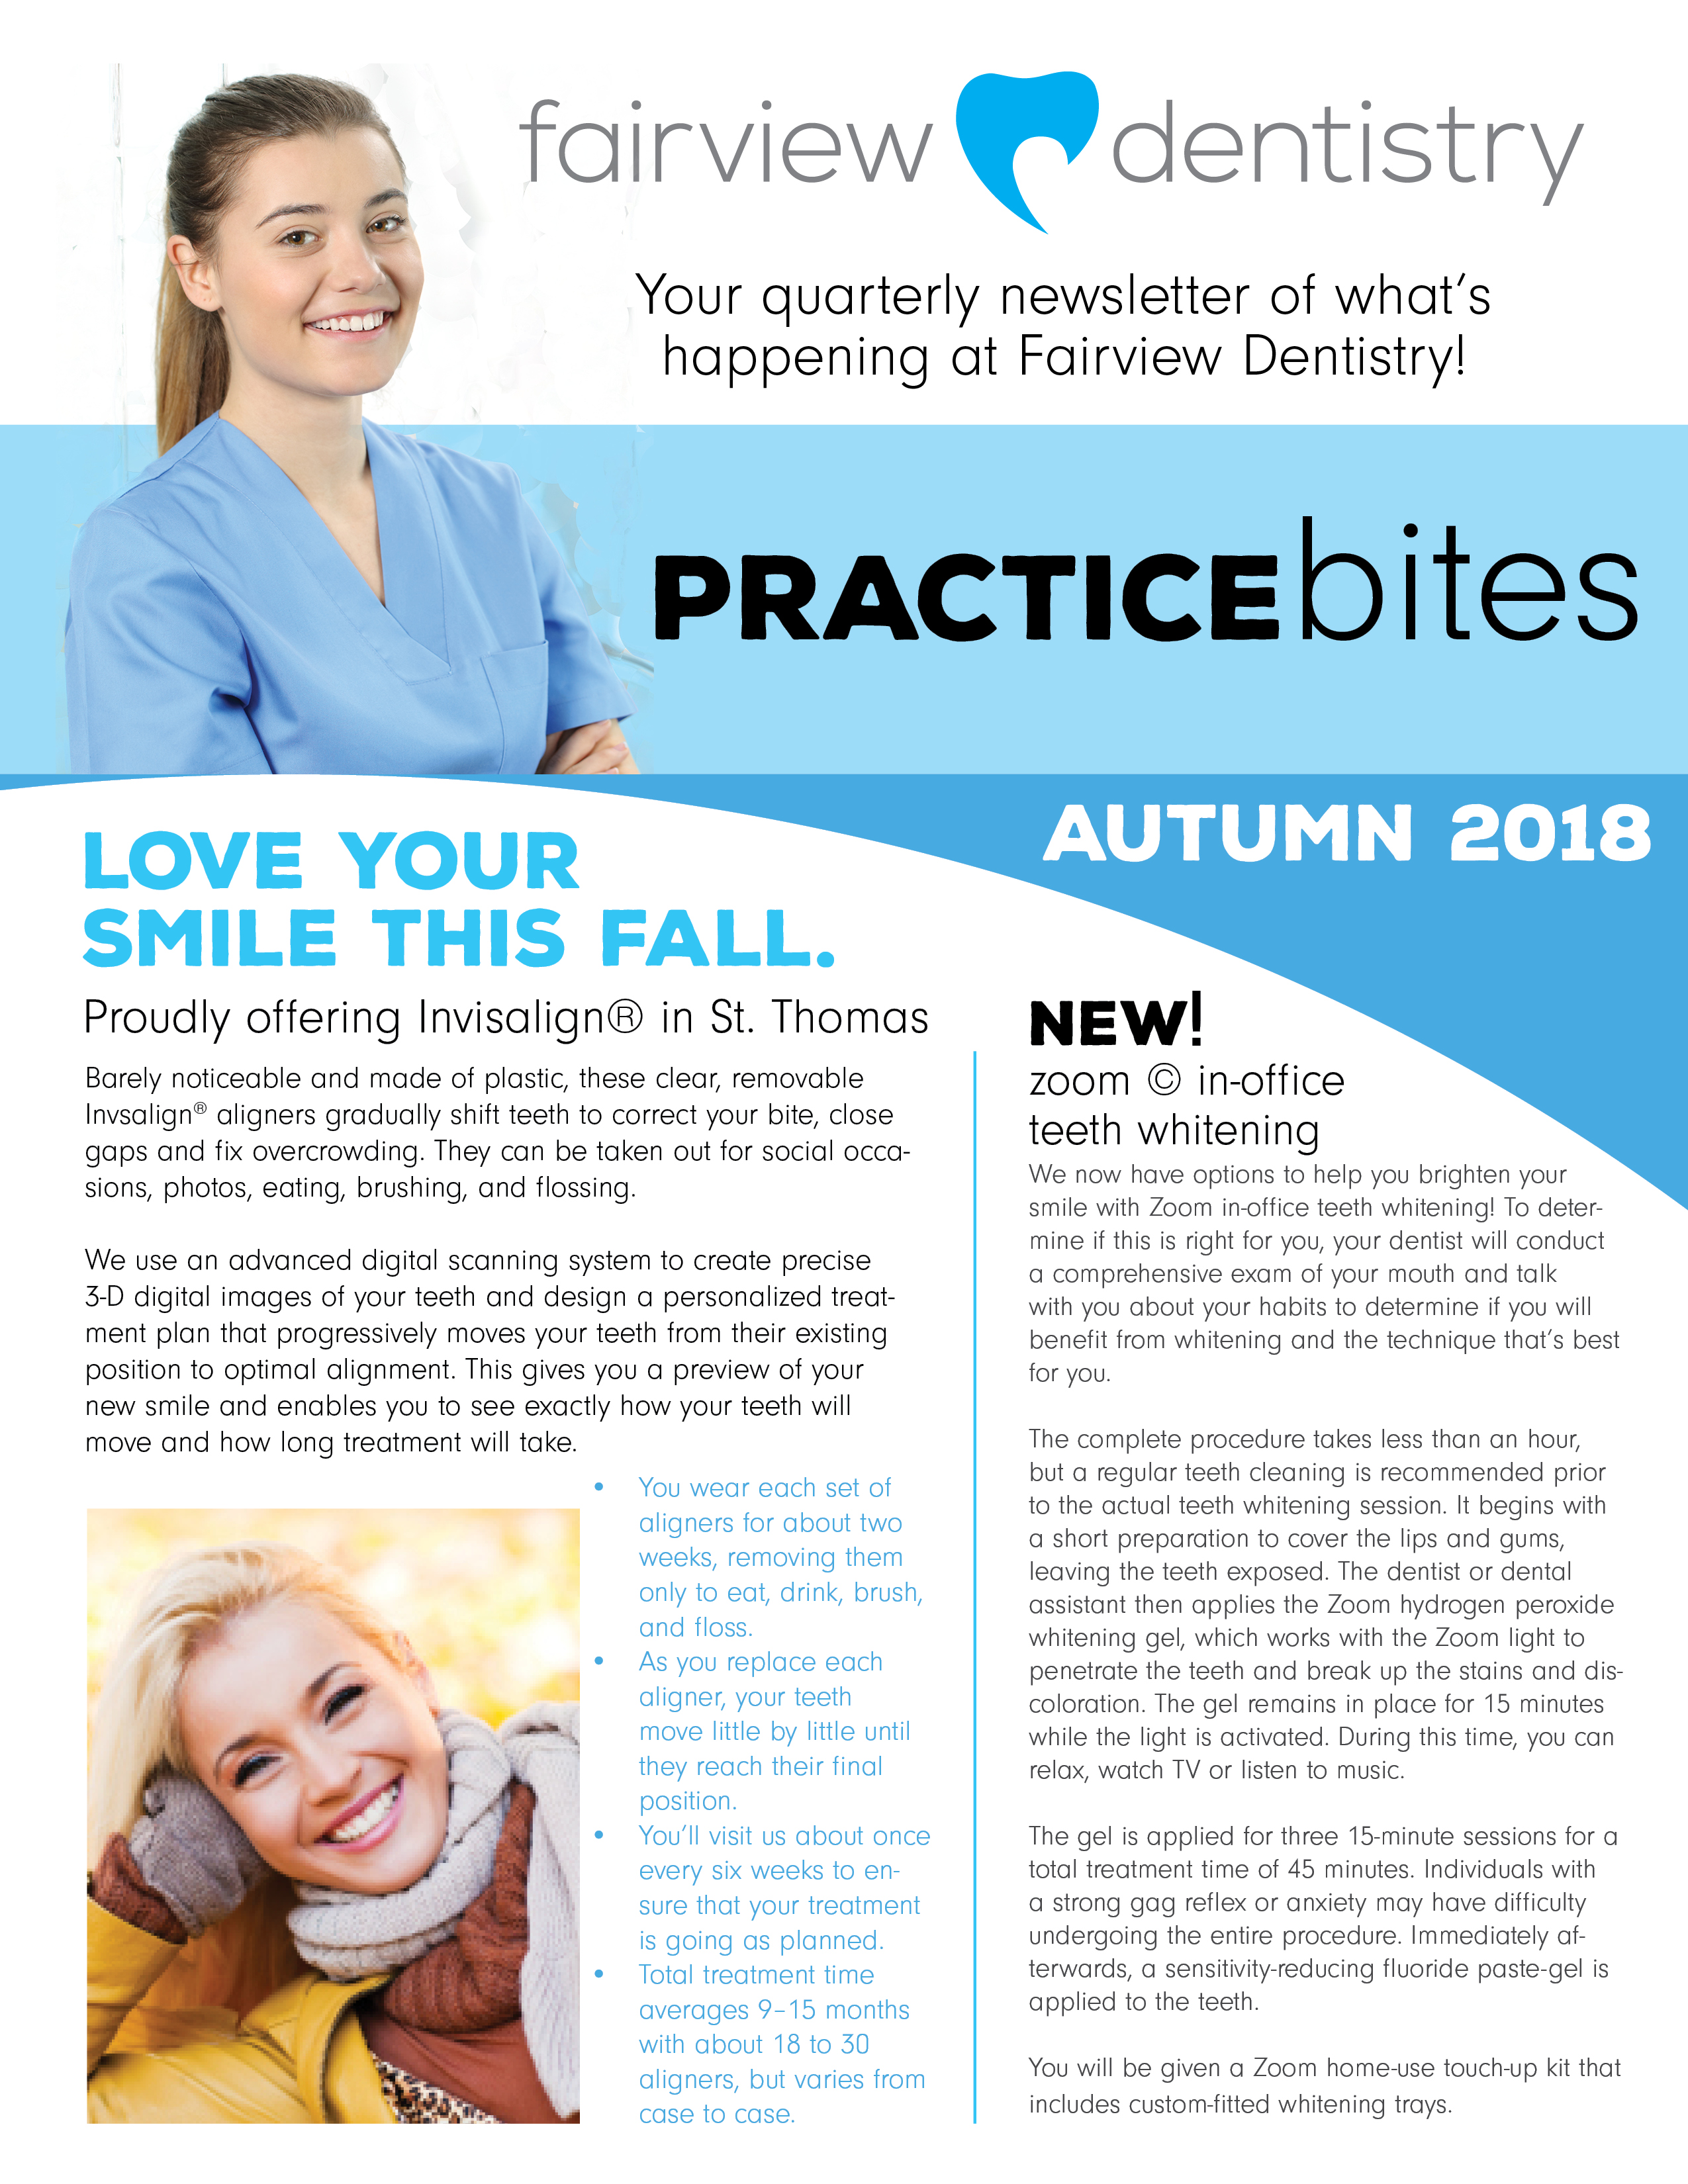 practice bites autumn newsletter seo title tag